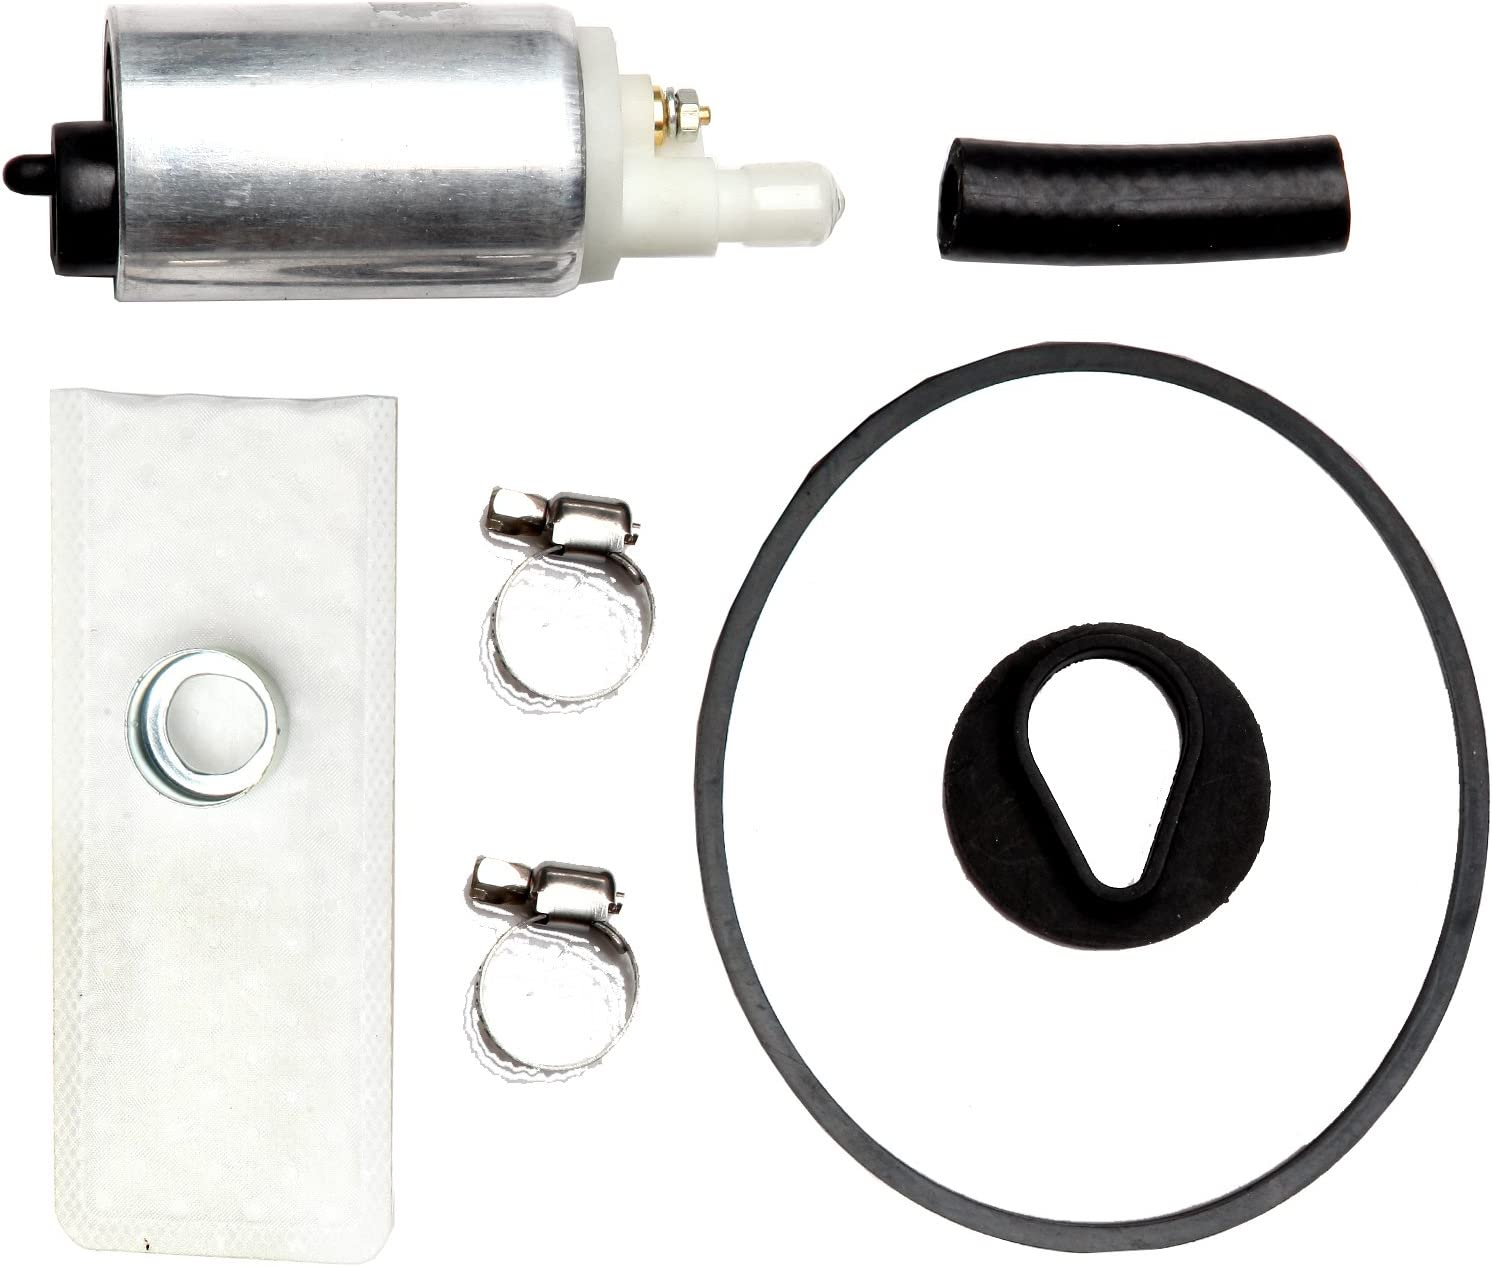 LSAILON Electric Fuel Pump Module Assembly Kit Fit for 1987-1993 Mazda B2200 2.2L E8778